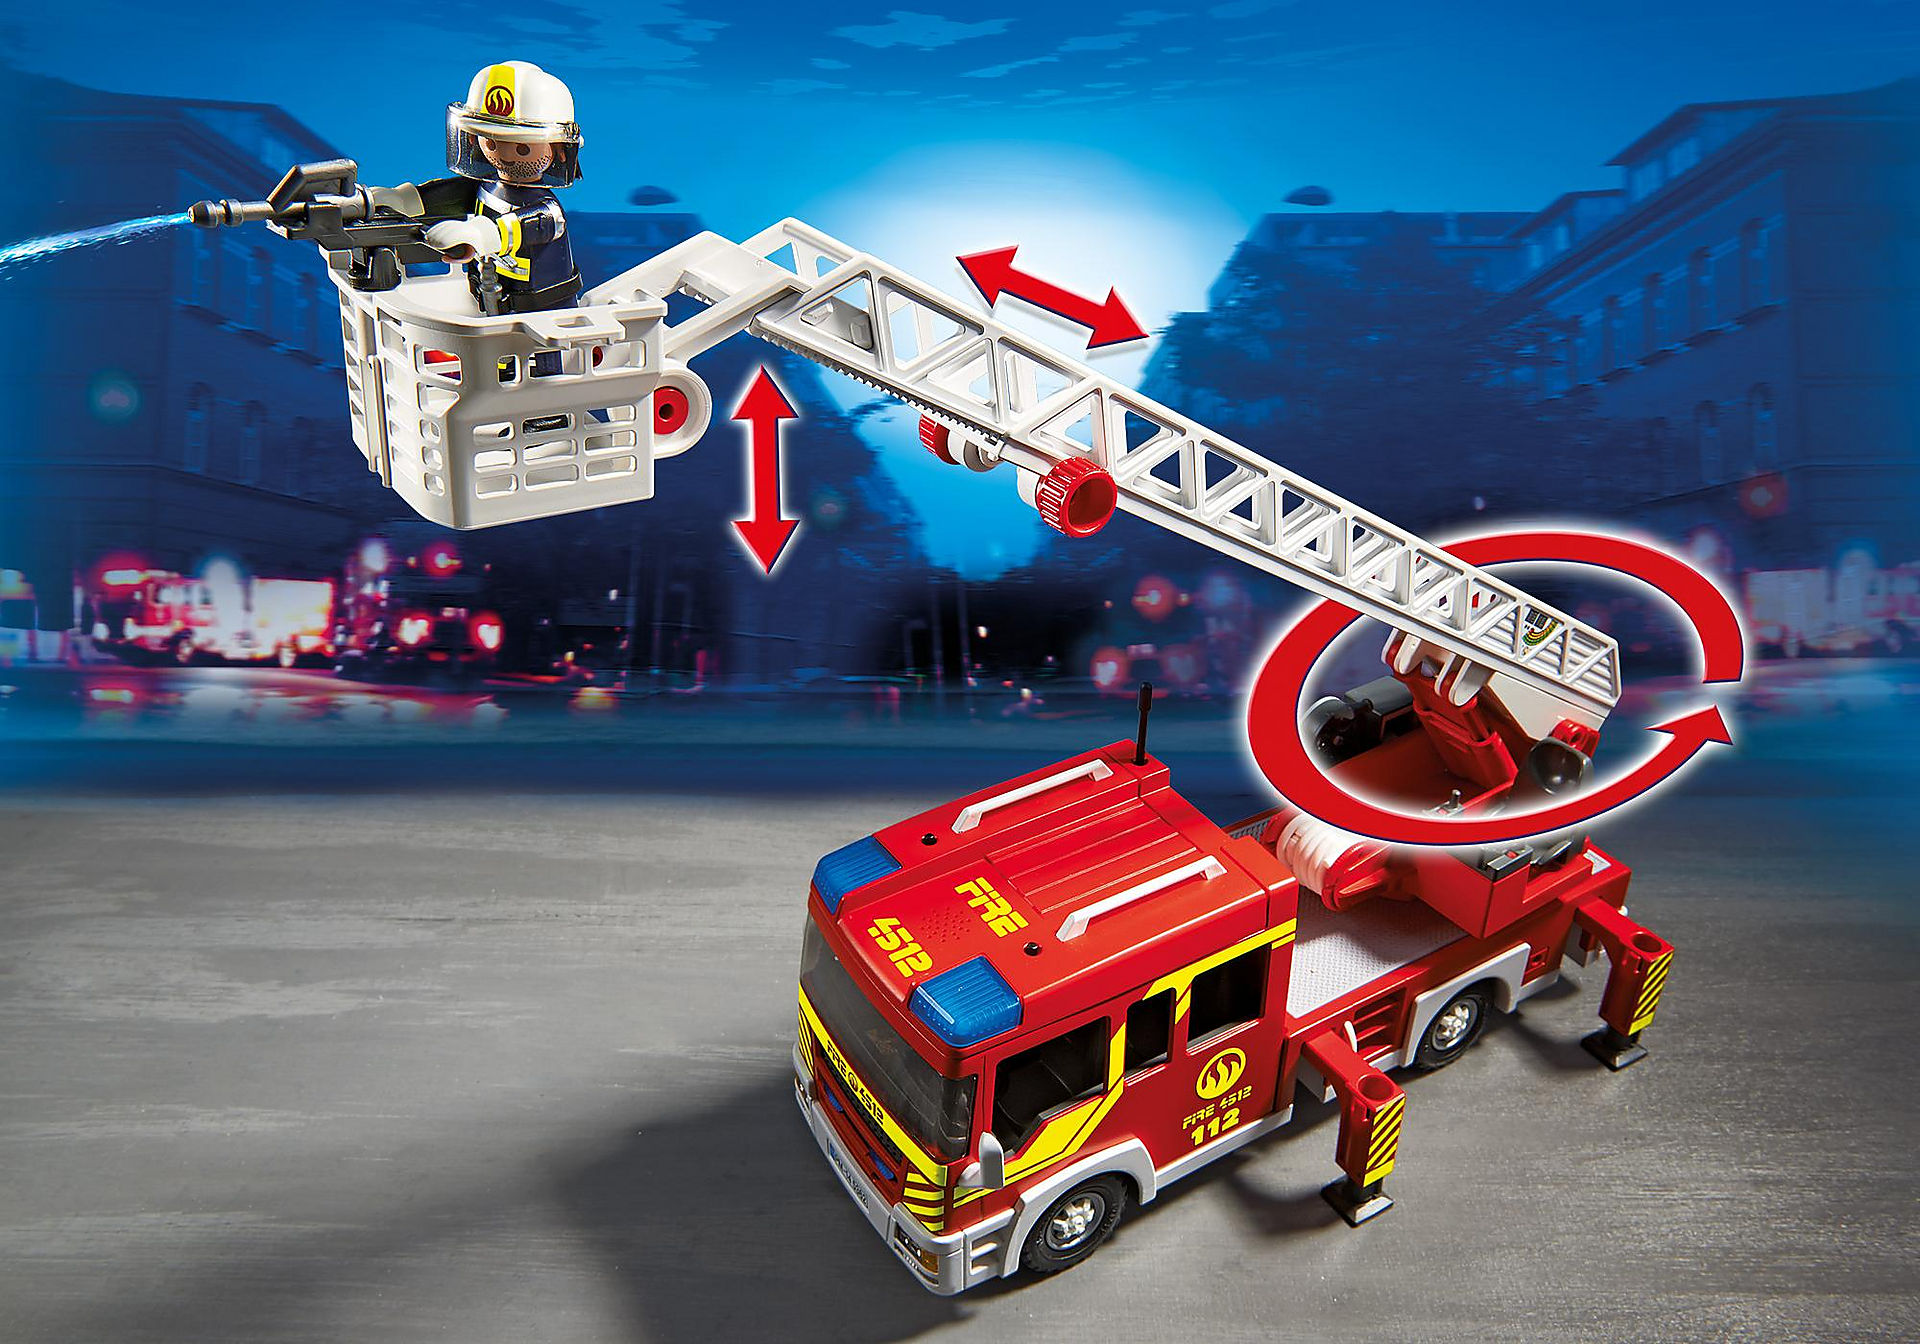 http://media.playmobil.com/i/playmobil/5362_product_extra2/Ladder Unit with Lights and Sound